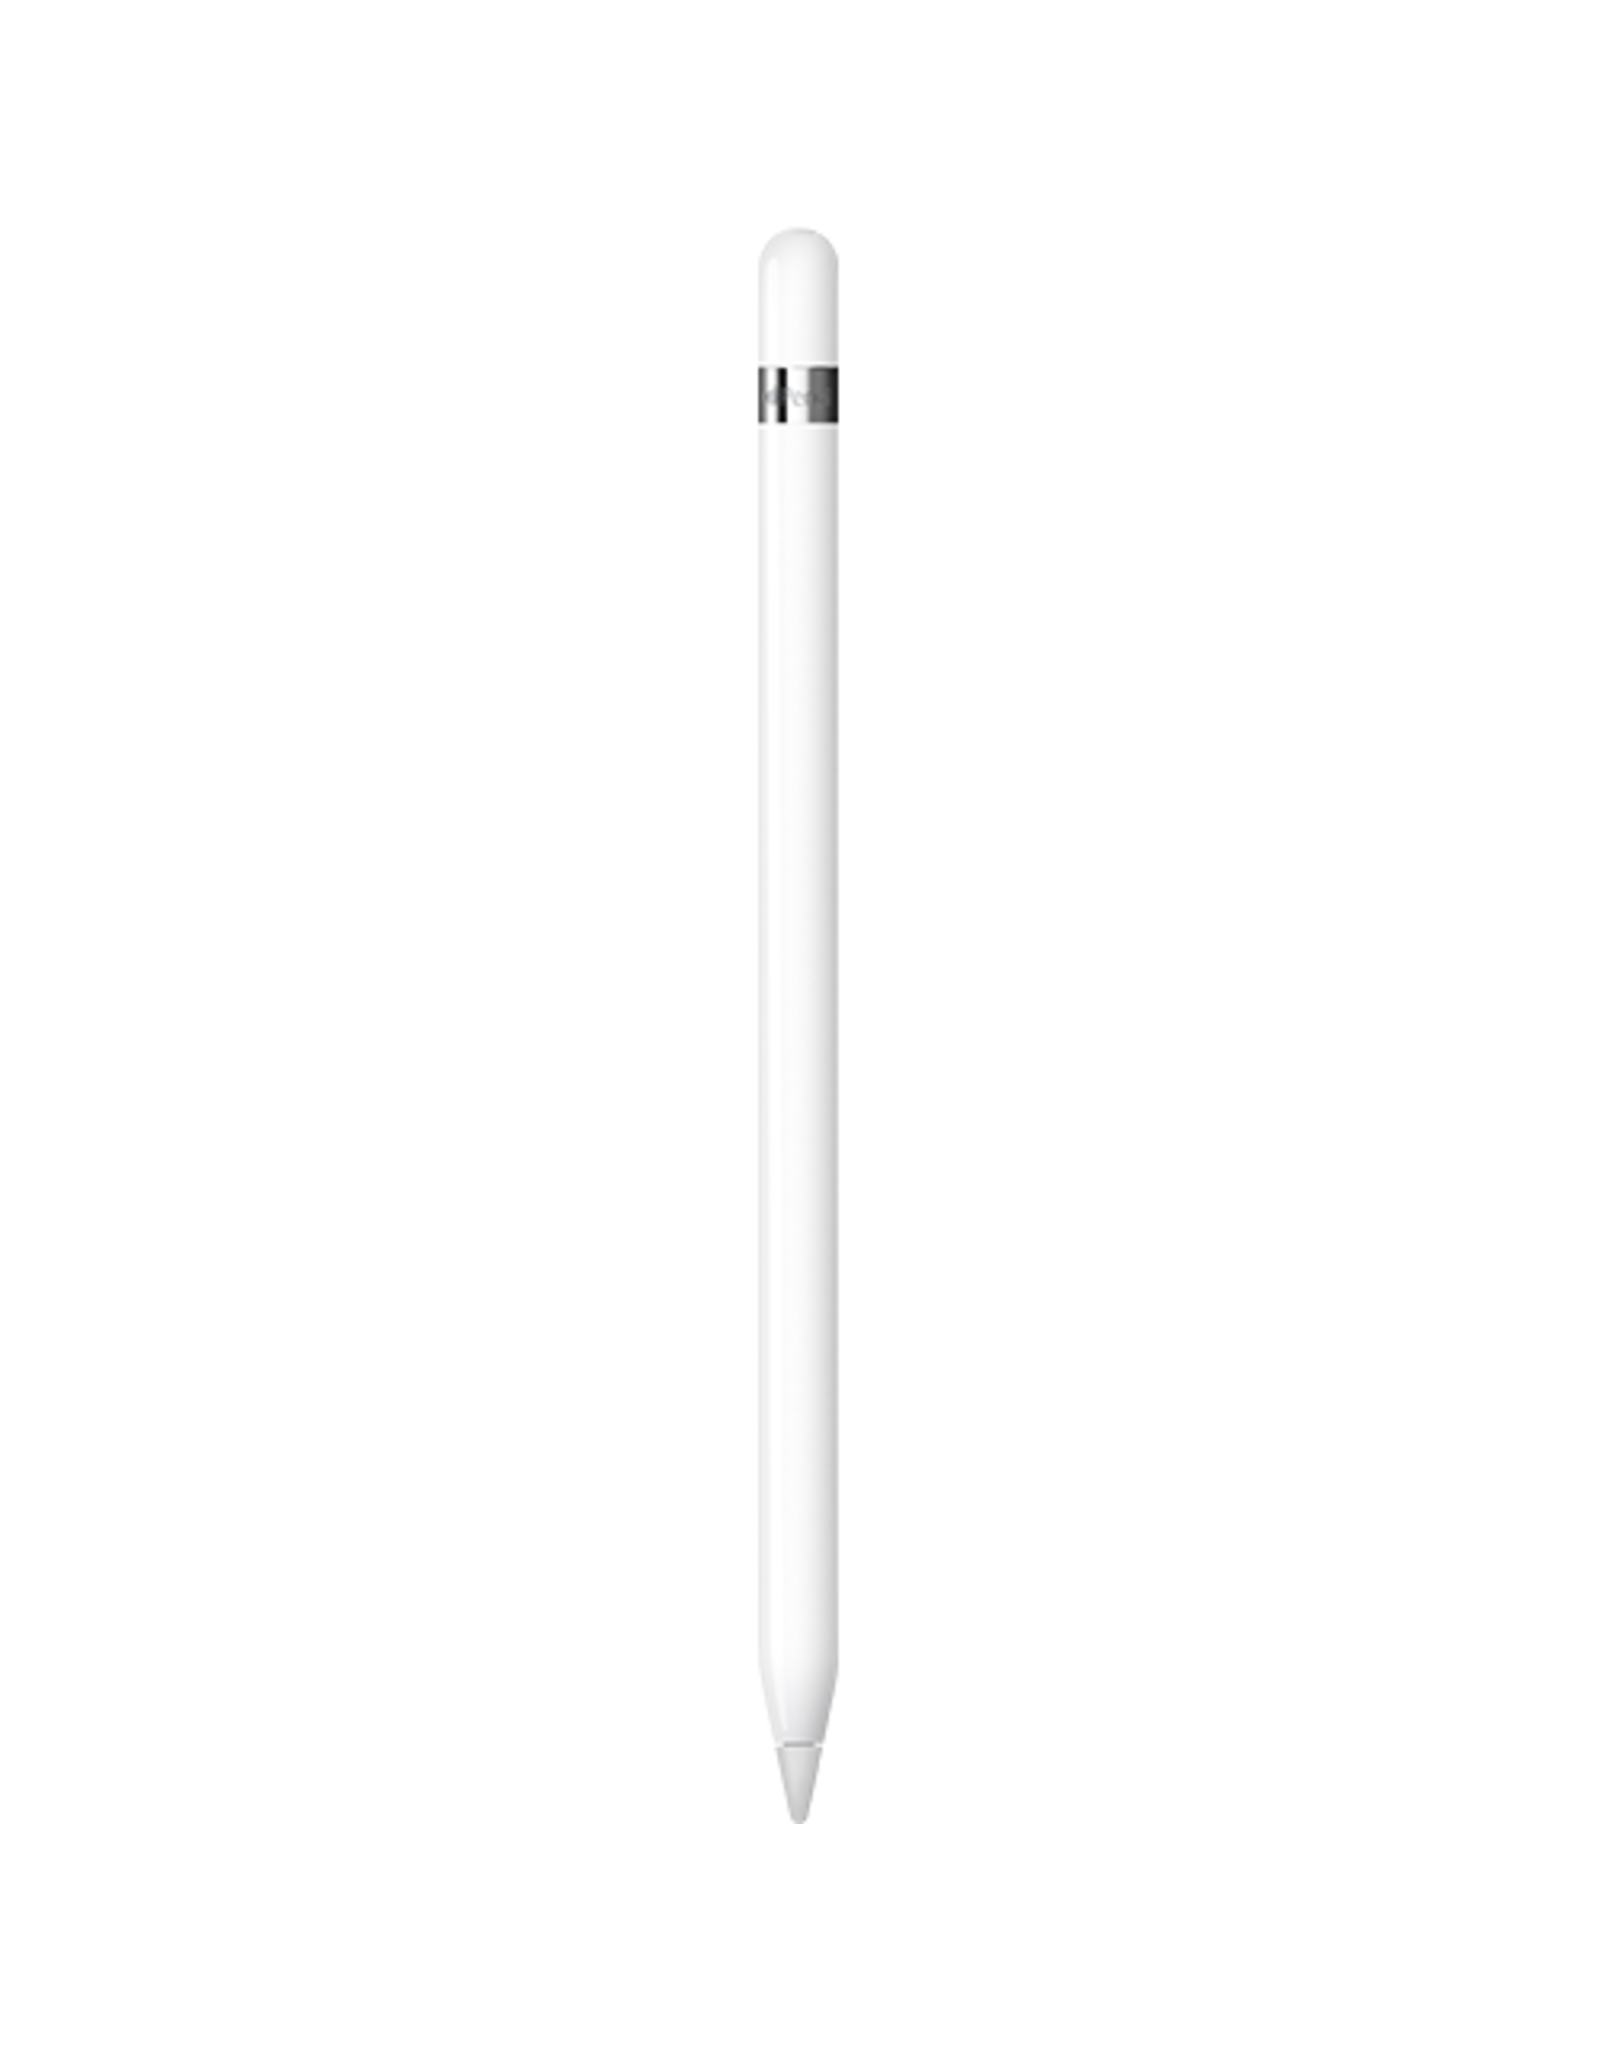 Apple Apple Pencil (1st Generation)